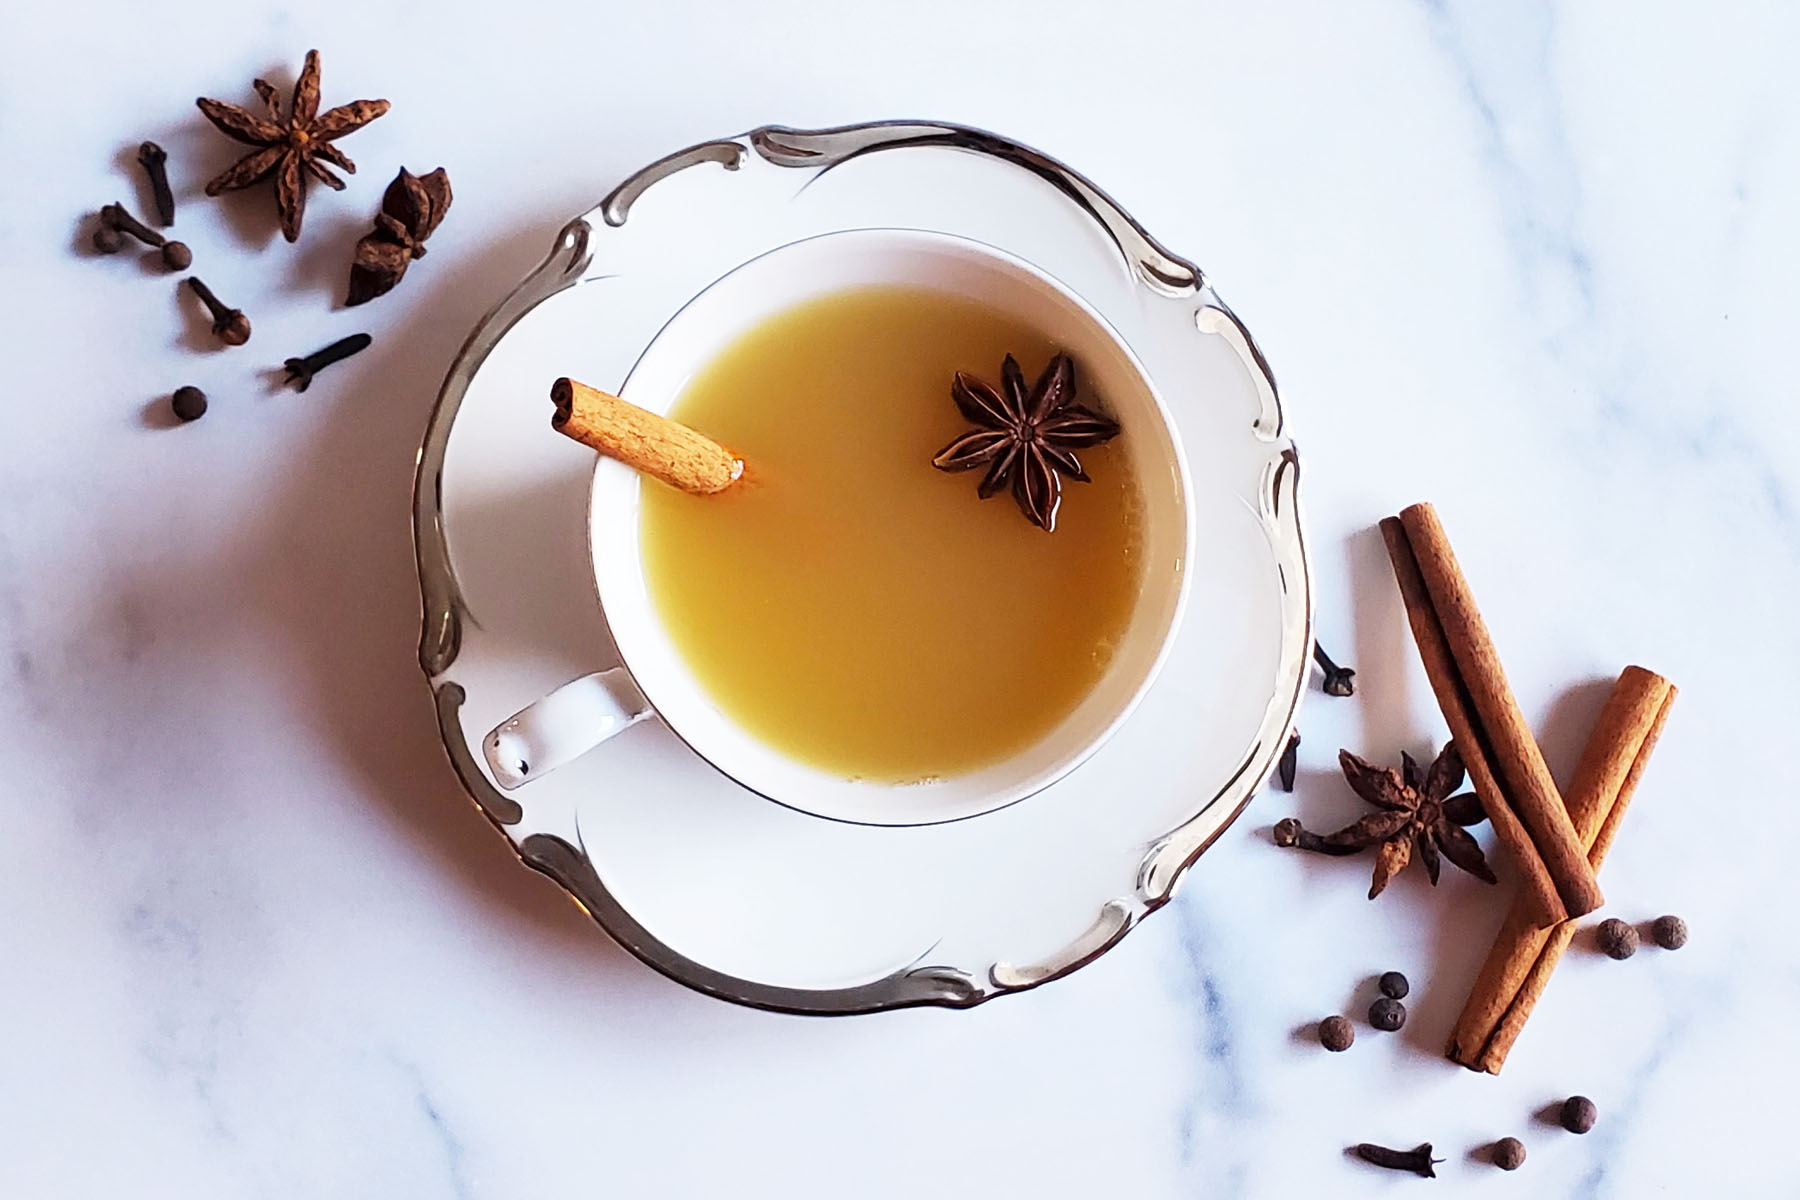 An antique teacup on a saucer, filled with wassail, a cinnamon stick and one star anise. It is in a marble counter, surrounding the cup are more spices, cinnamon sticks, clove, allspice berries and star anise.